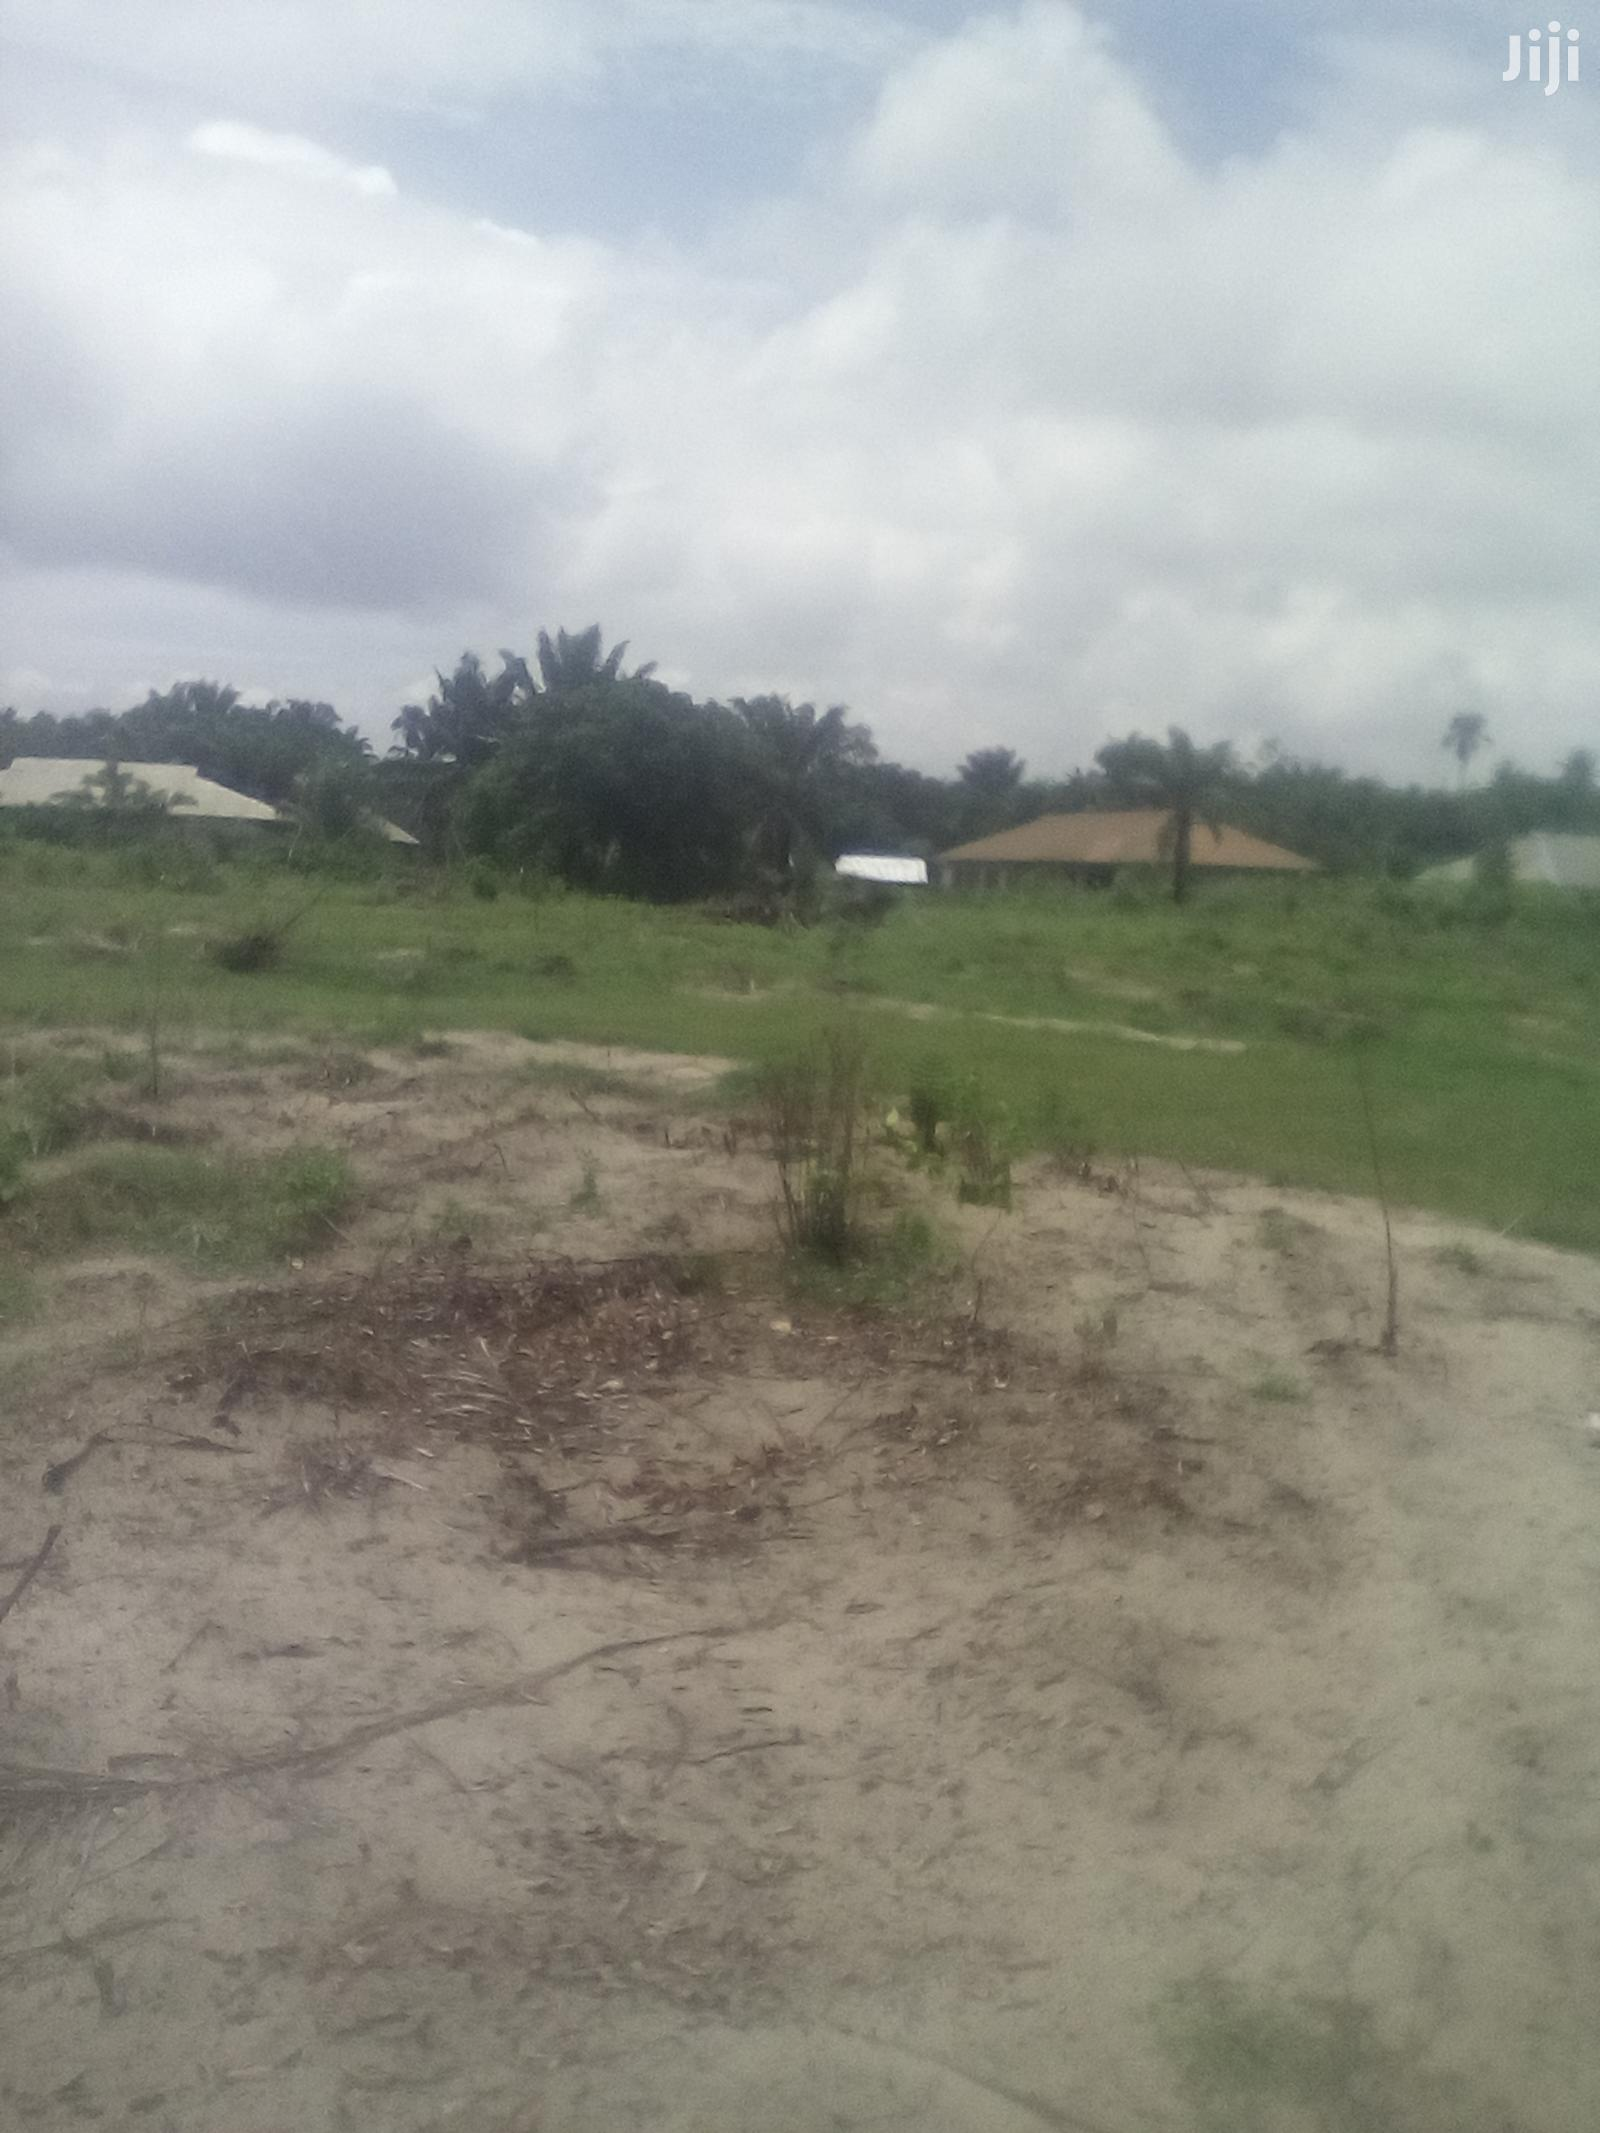 BUY LAND IN IBEJU-LEKKI, 5mins to Dangote Refinery*Instant Allocation* | Land & Plots For Sale for sale in Ibeju, Lagos State, Nigeria